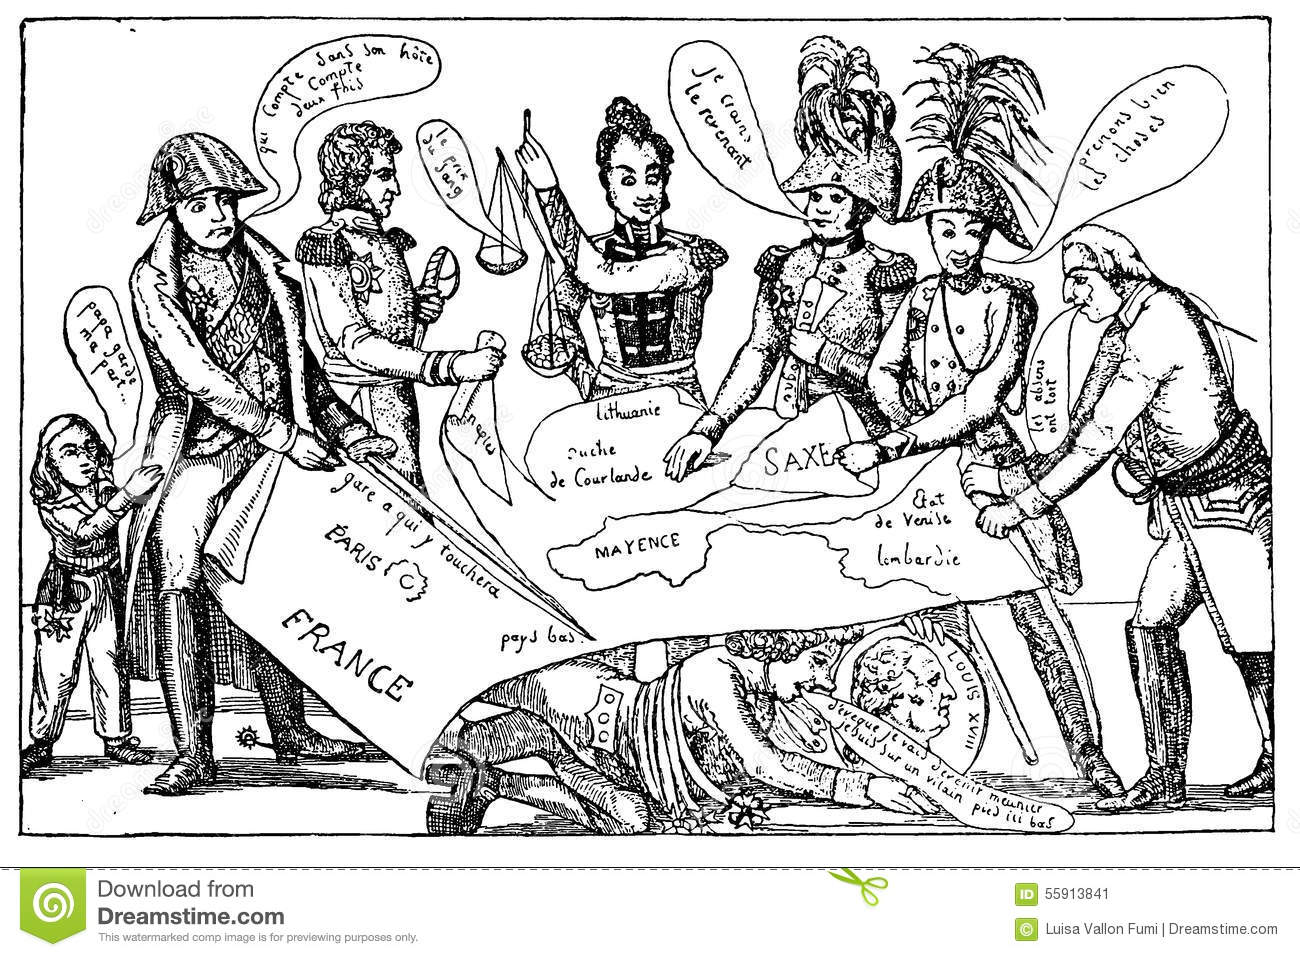 the impact of congress of vienna in shaping europe France have gave up claim to the land in europe after the congress of vienna congress of vienna impact europe the congress of vienna ensure peace in europe.